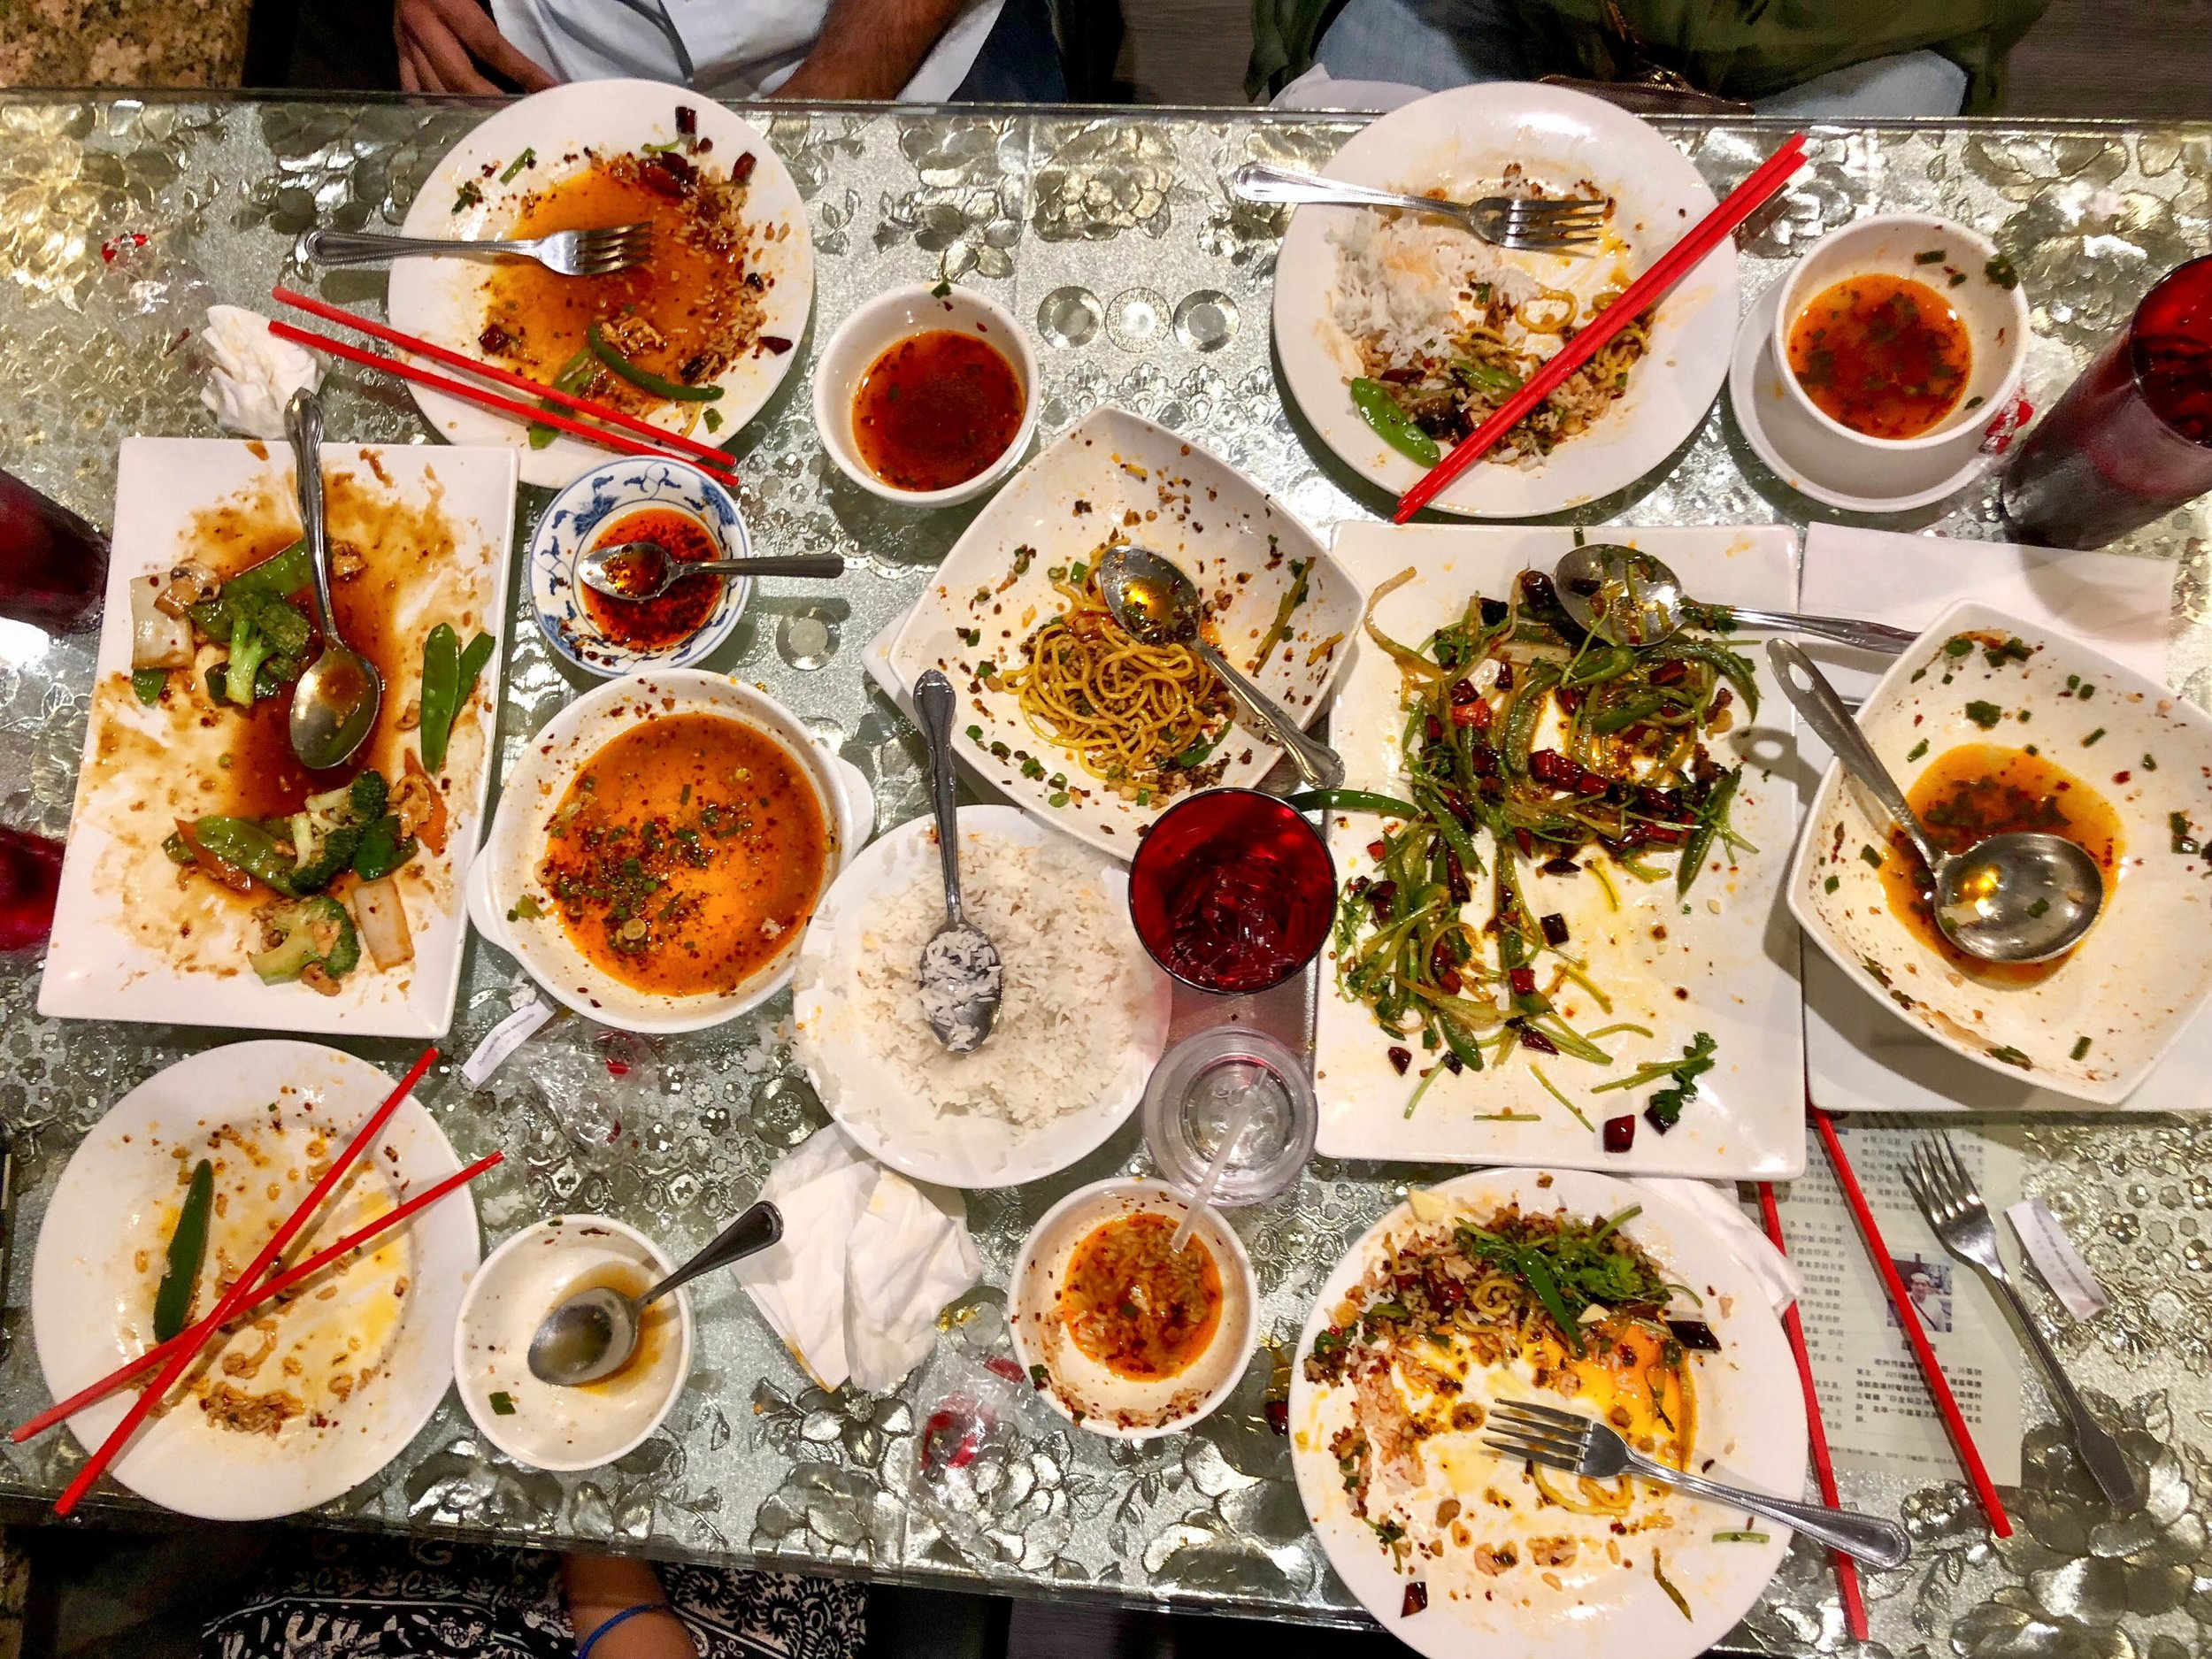 Photo credit: Jusleen Sodiwal and all her friends for finishing the food!